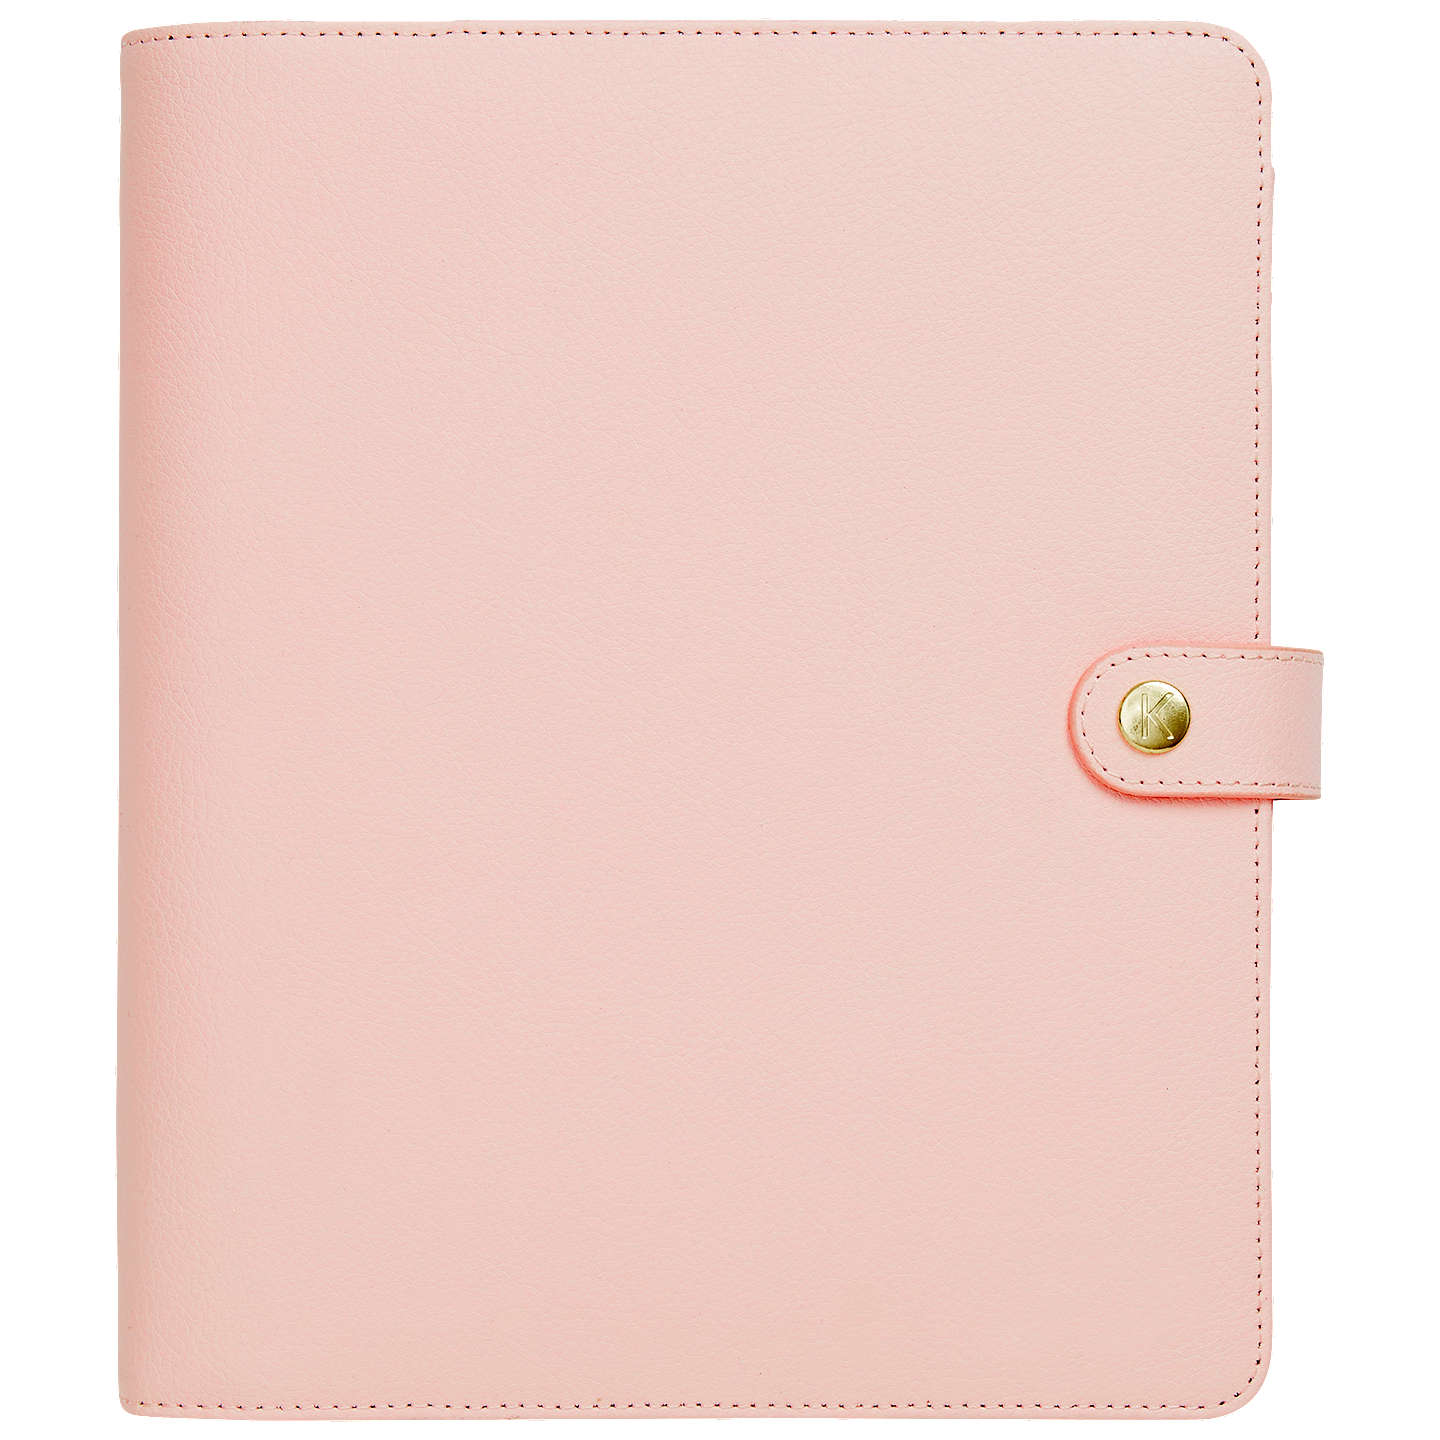 k large leather personal planner pink online at johnlewiscom